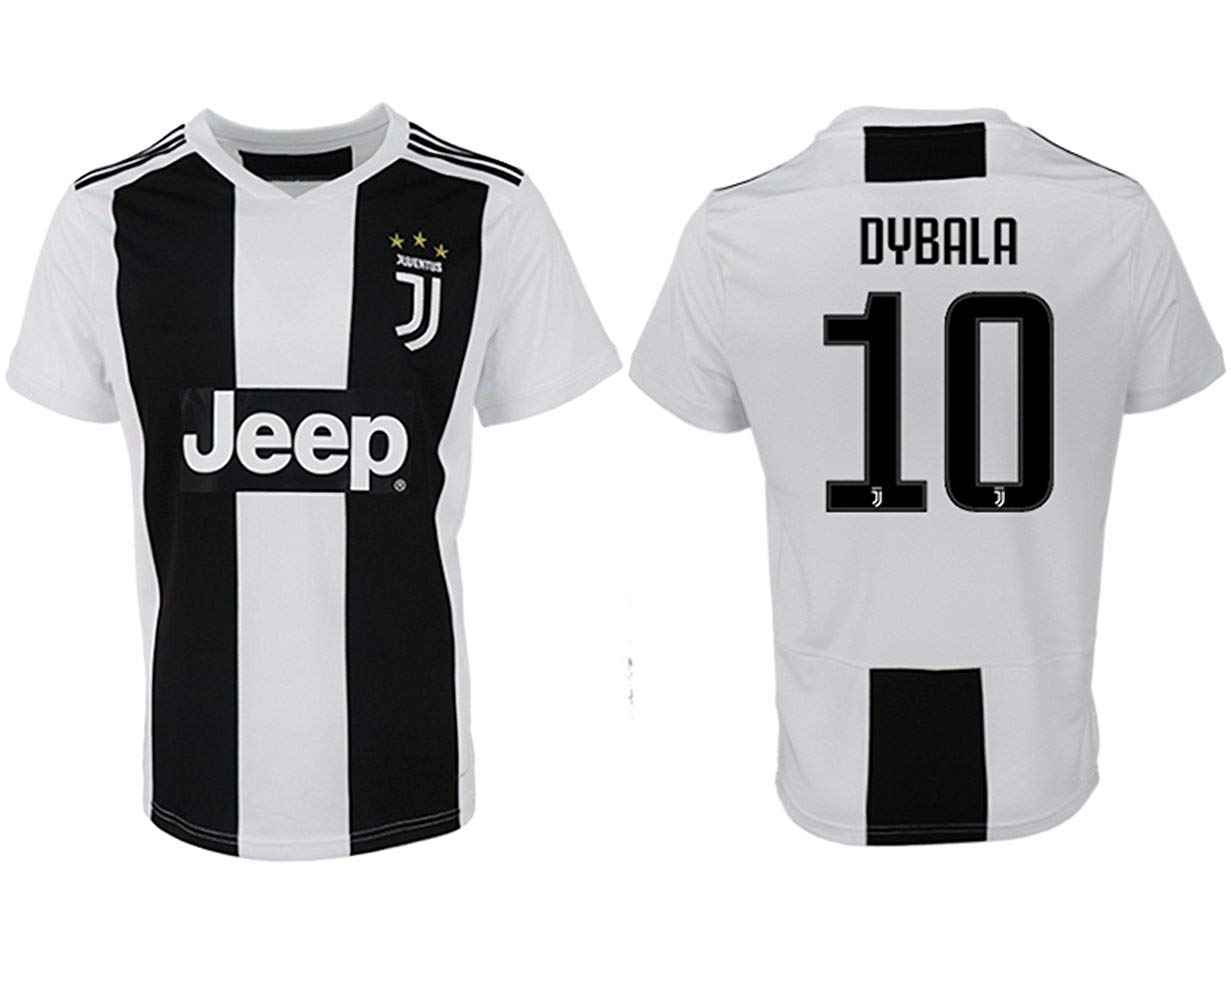 1987a4f4b Get Quotations · Juventus Dybala   10 Soccer Jersey 2018 2019 Home Men s  Jersey